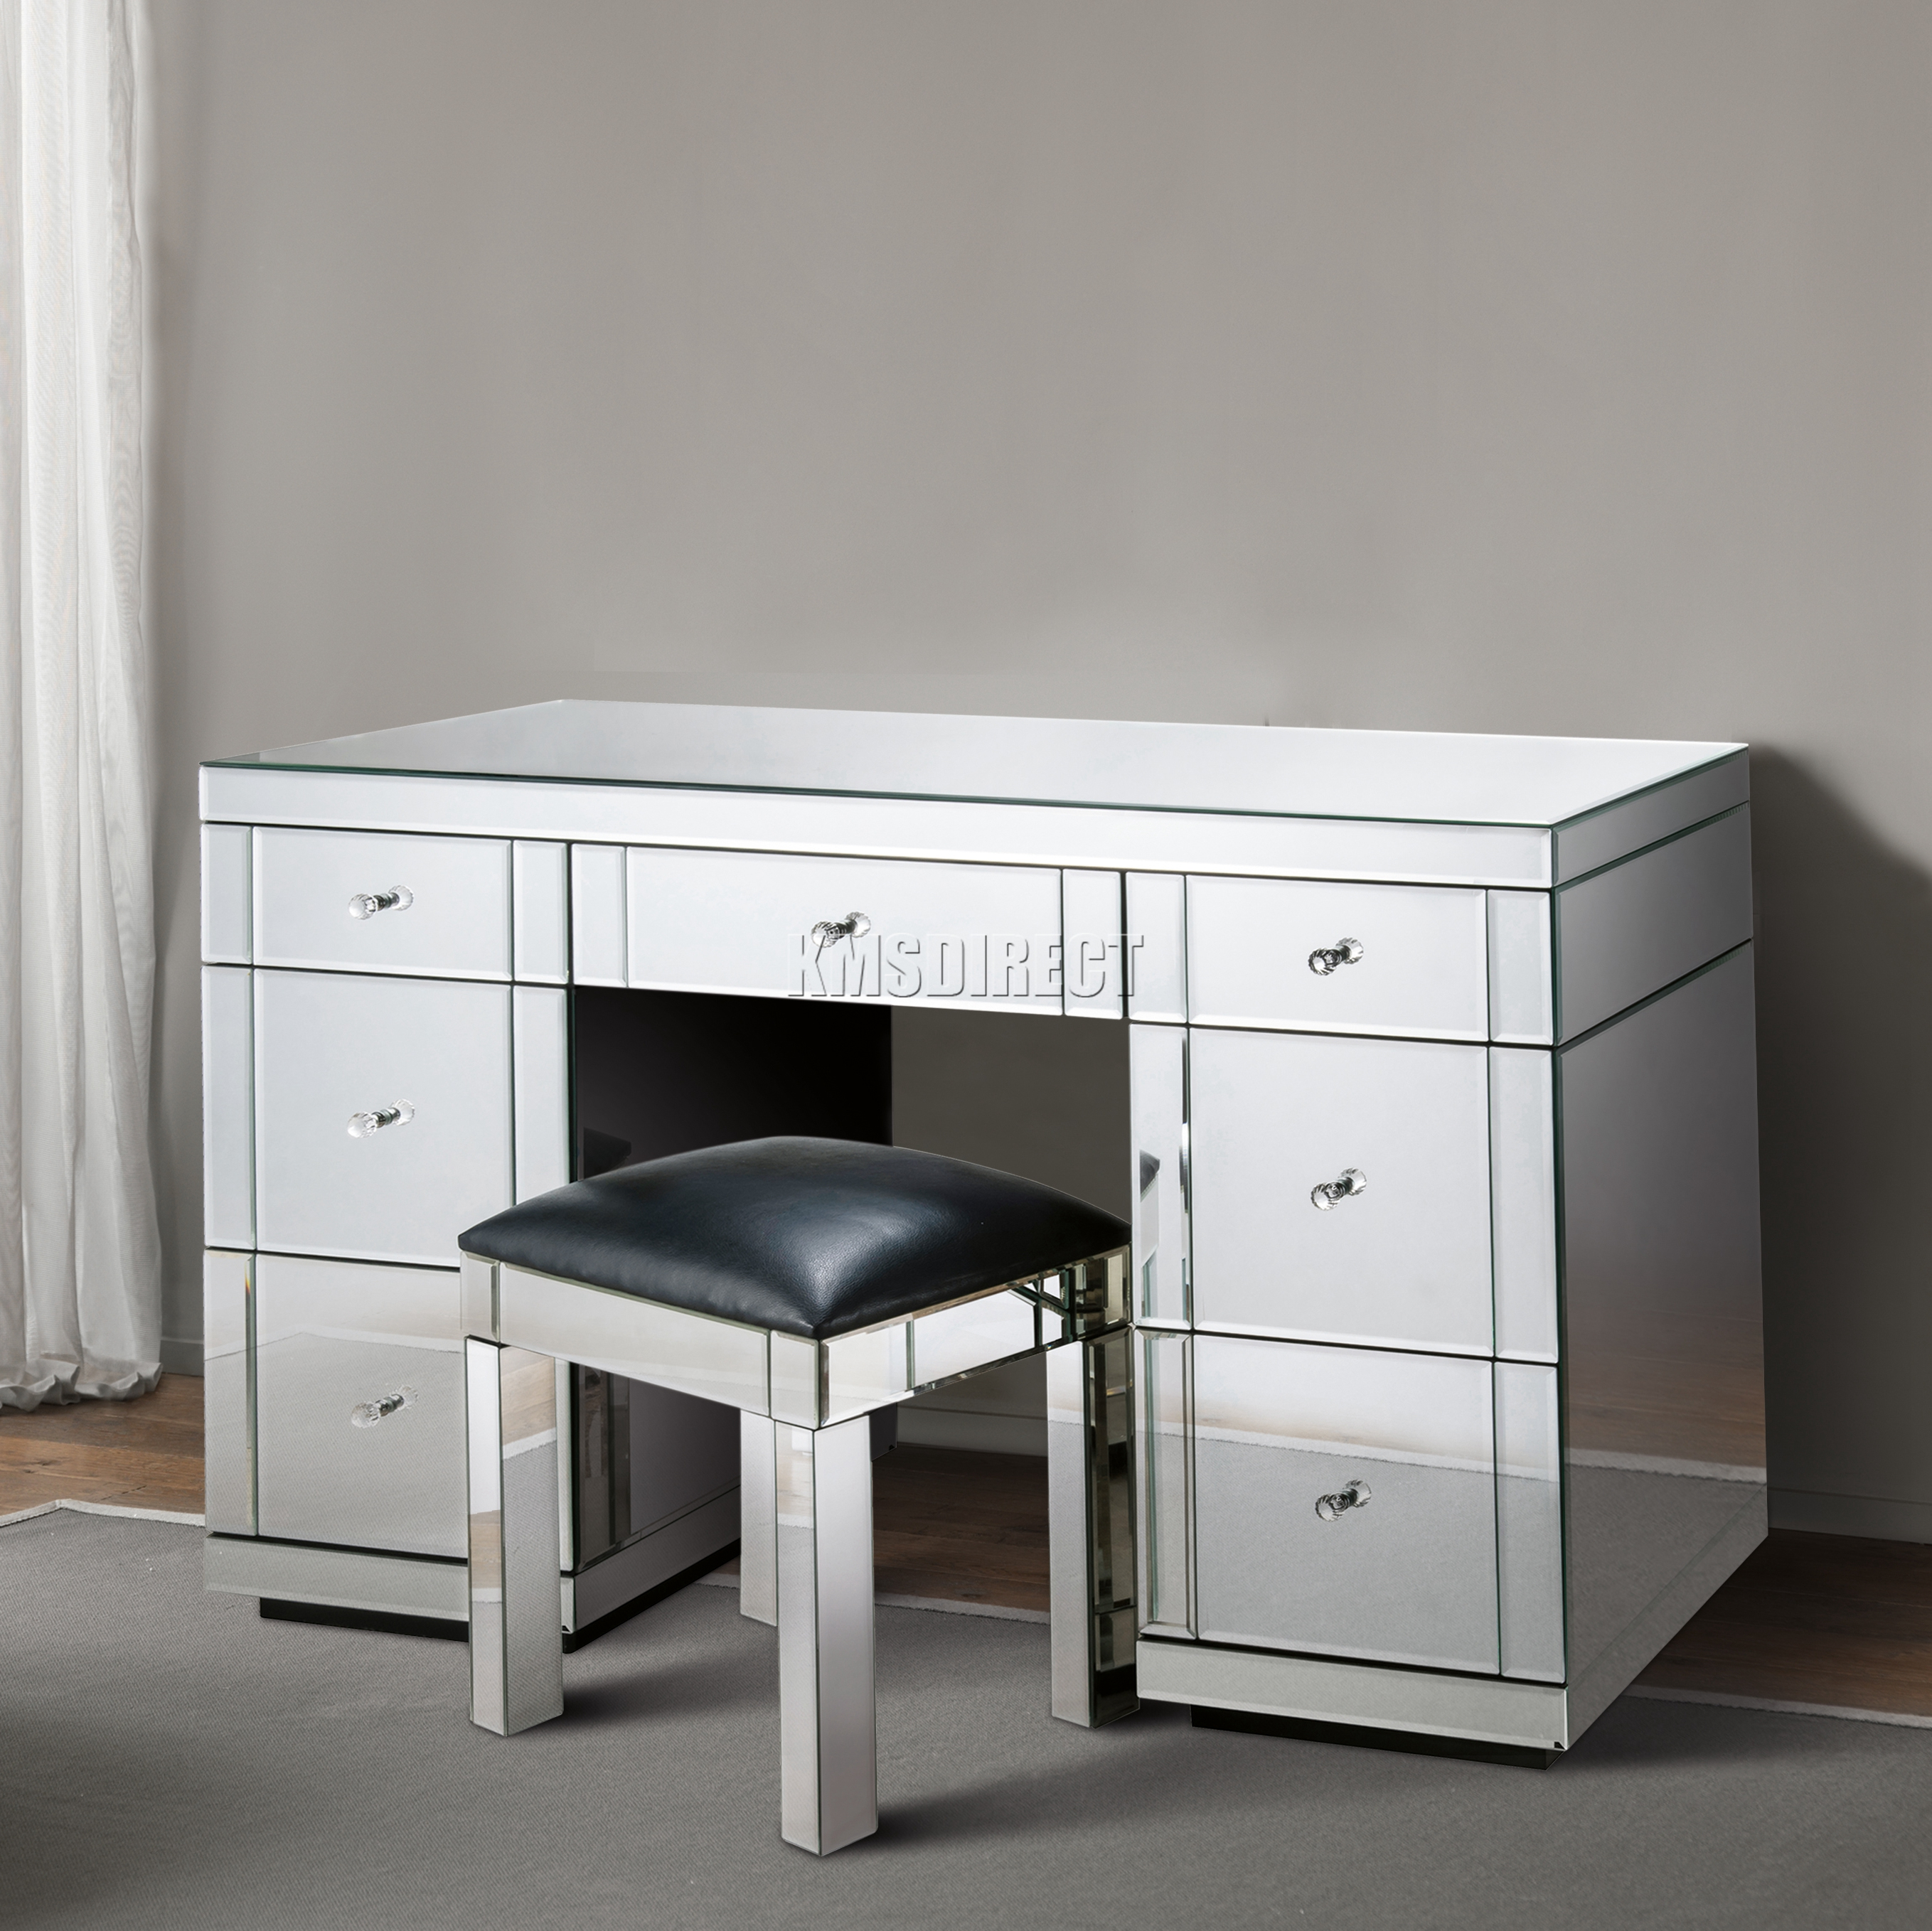 Sentinel foxhunter mirrored furniture glass 7 drawer dressing table console bedroom mdt02